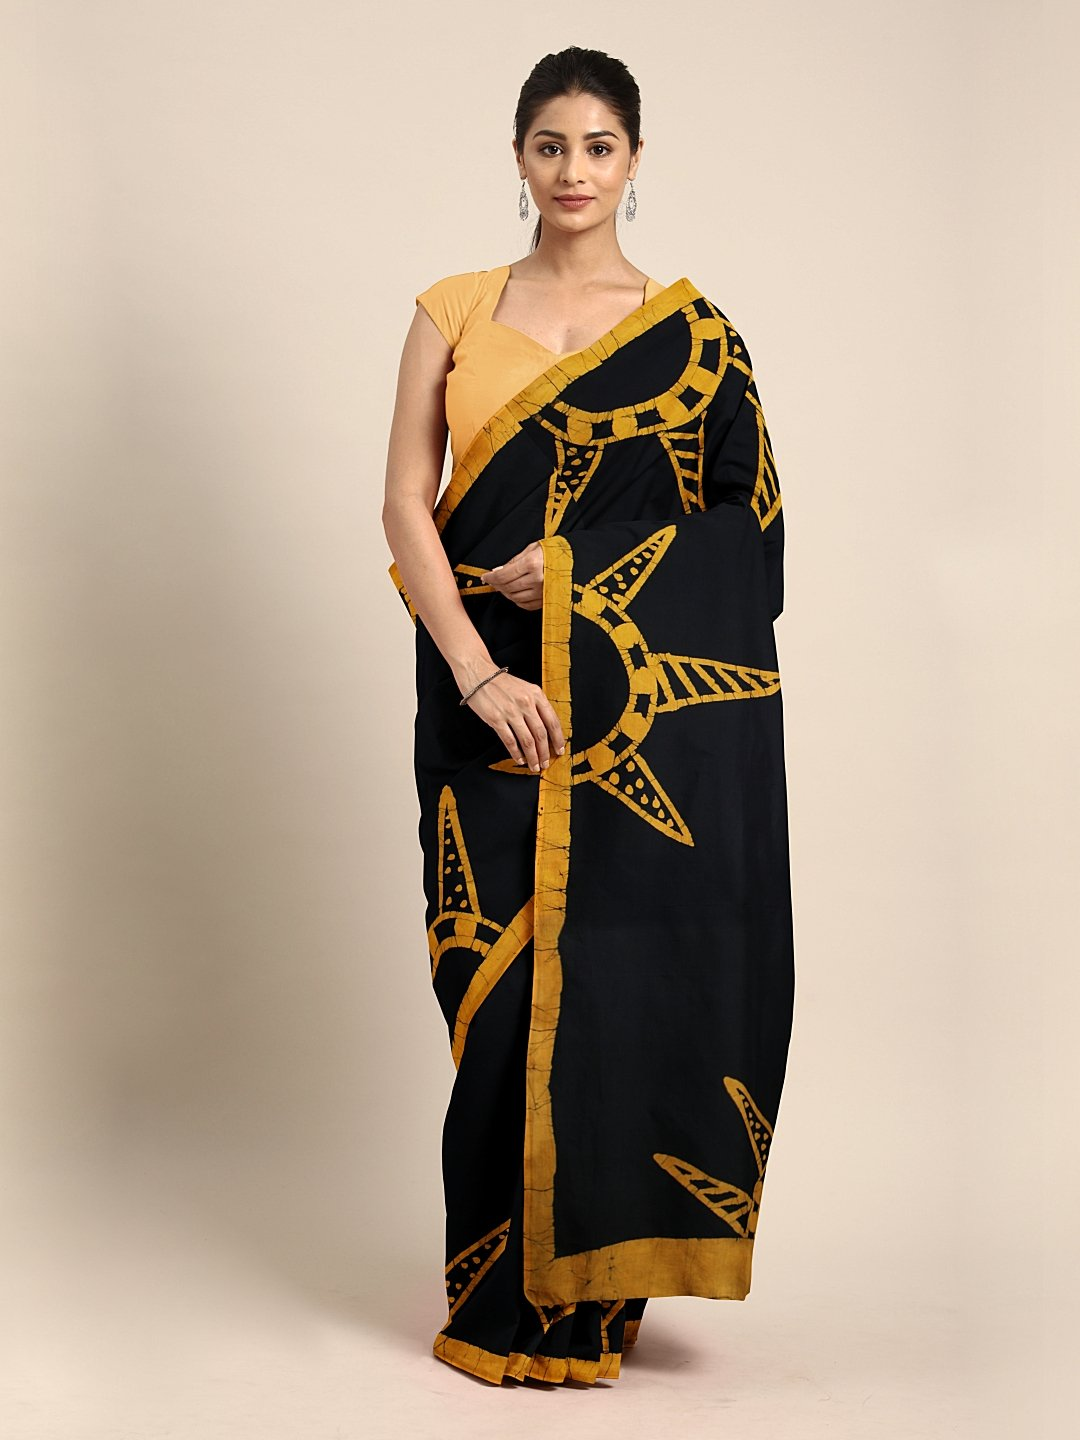 Mustard Yellow & Black Handblock Print Batik Handcrafted Cotton Saree-Saree-Kalakari India-BHKPSA0056-Batik, Cotton, Geographical Indication, Hand Blocks, Hand Crafted, Heritage Prints, Sarees, Sustainable Fabrics-[Linen,Ethnic,wear,Fashionista,Handloom,Handicraft,Indigo,blockprint,block,print,Cotton,Chanderi,Blue, latest,classy,party,bollywood,trendy,summer,style,traditional,formal,elegant,unique,style,hand,block,print, dabu,booti,gift,present,glamorous,affordable,collectible,Sari,Saree,printed